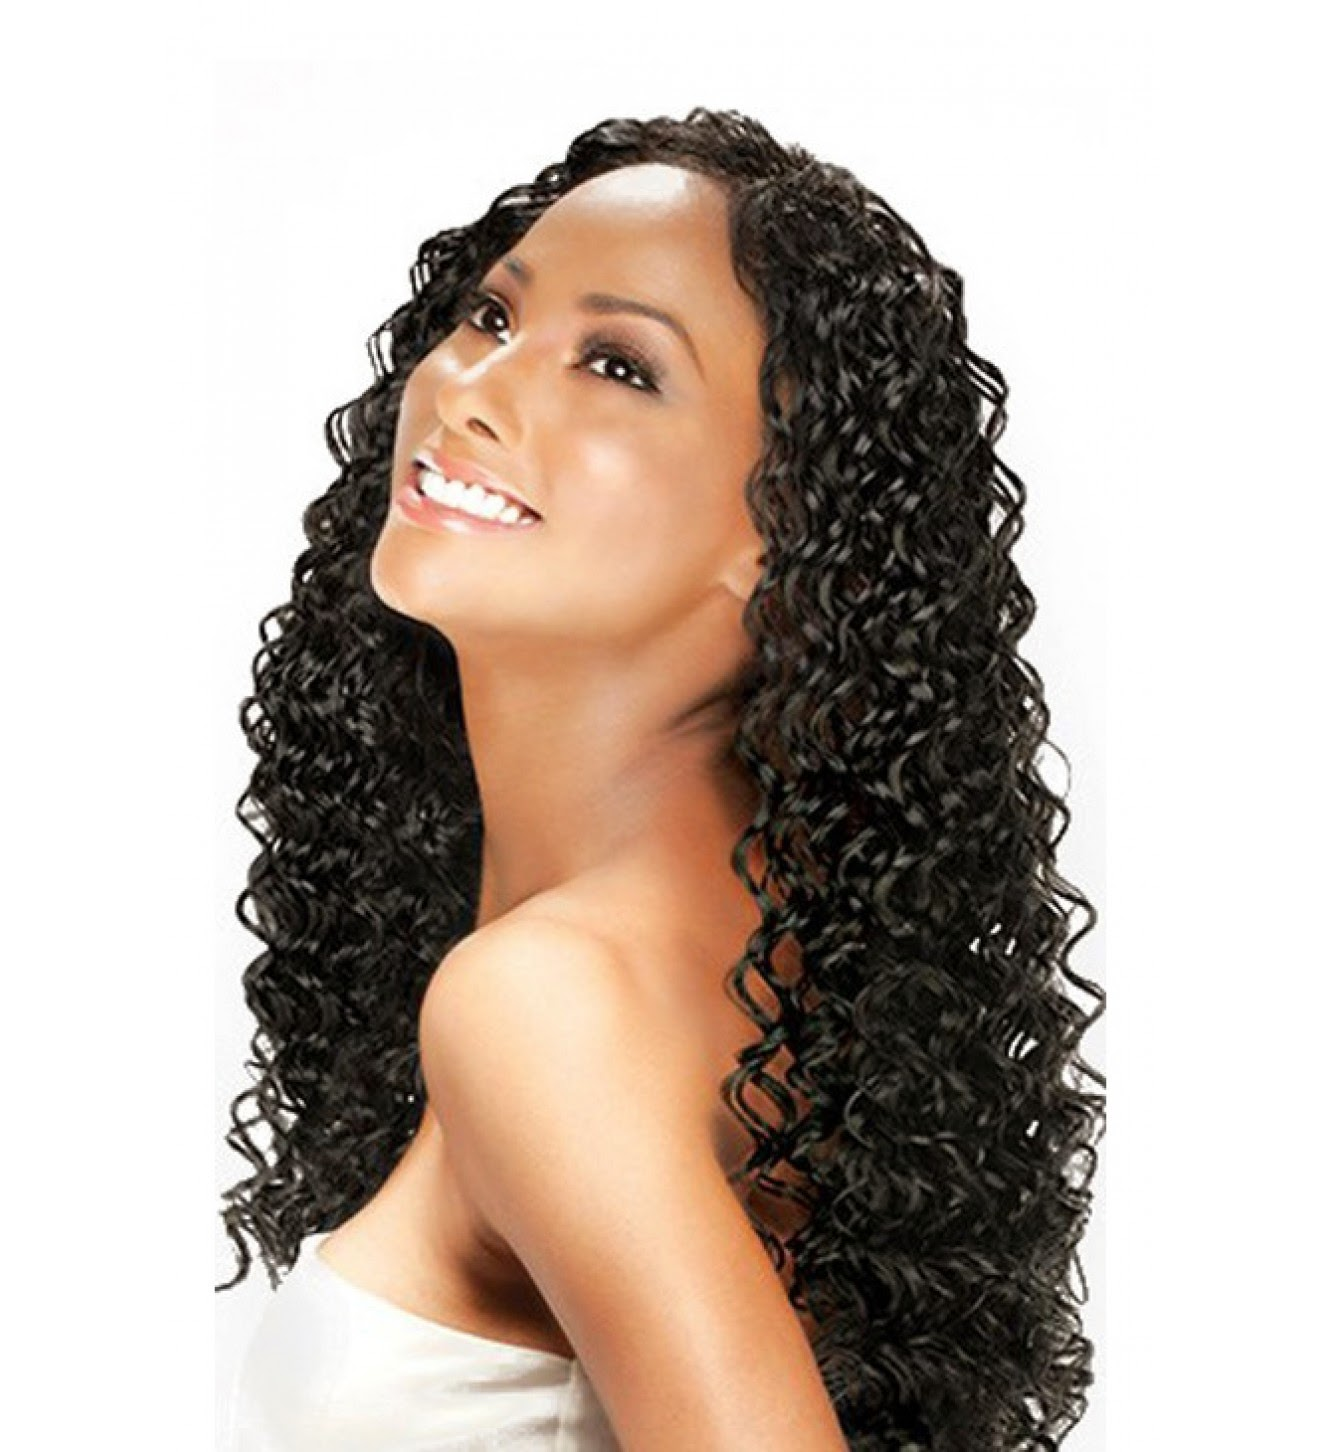 Hair Extension Human Hair Extensions Which Model Is The Best